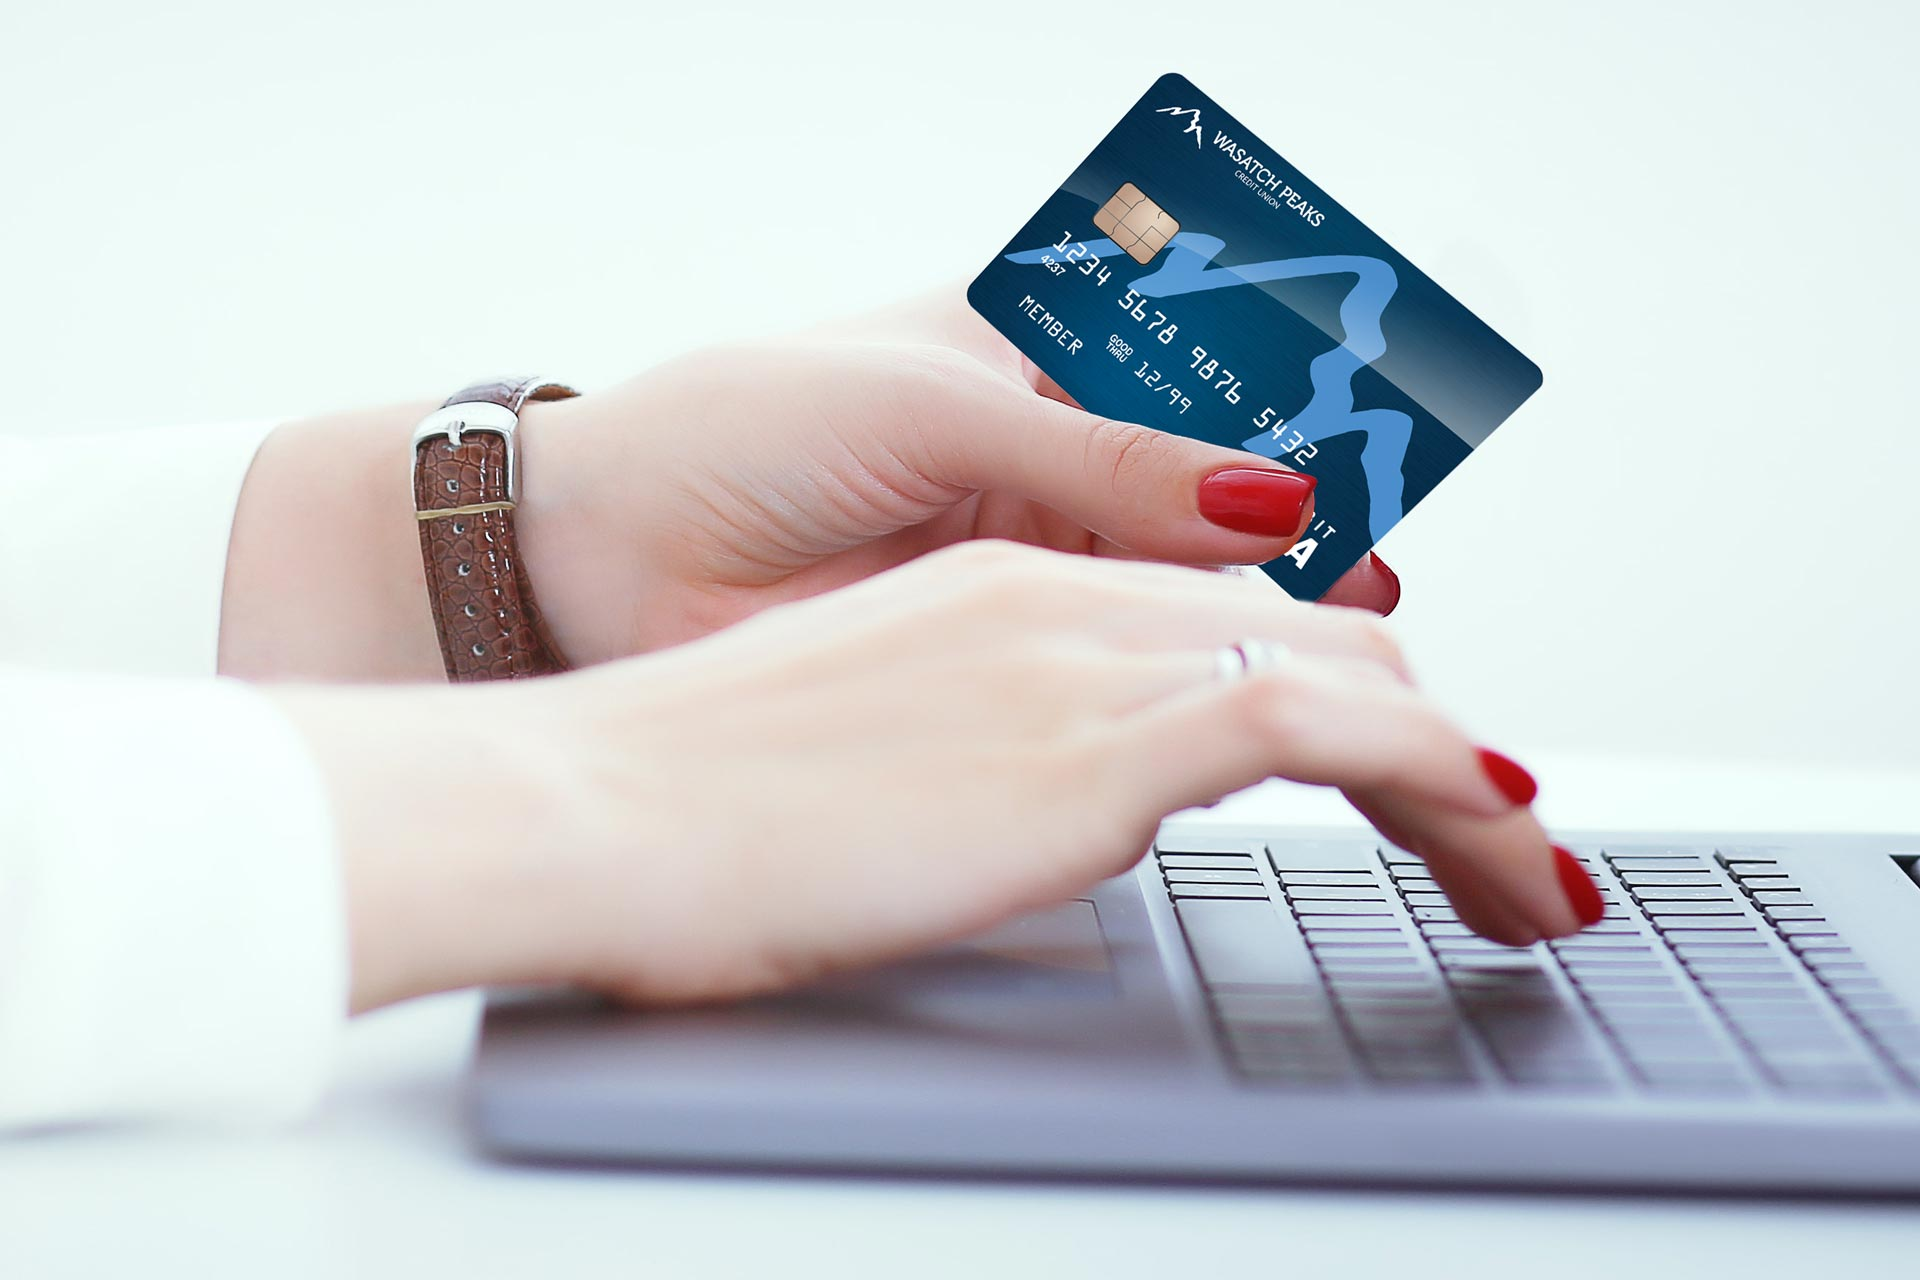 Woman's hands typing on laptop while holding a Wasatch Peaks debit card